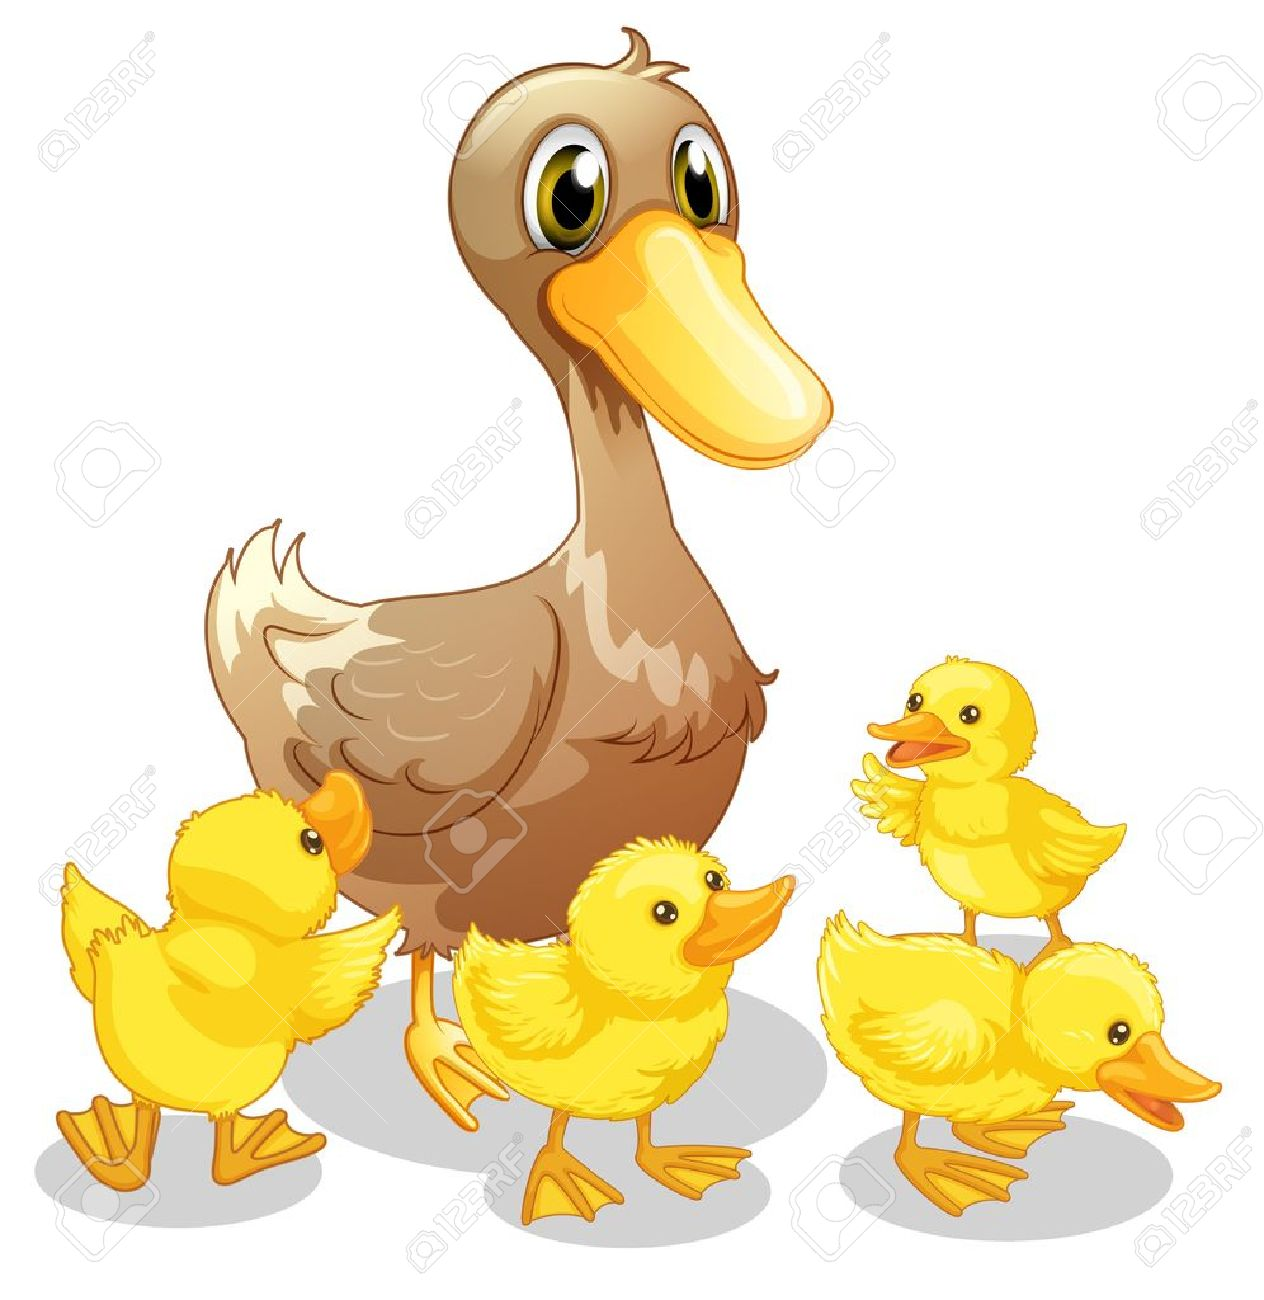 Illustration Of The Brown Duck And Her Four Yellow Ducklings ... for Duck And Duckling Clipart  197uhy